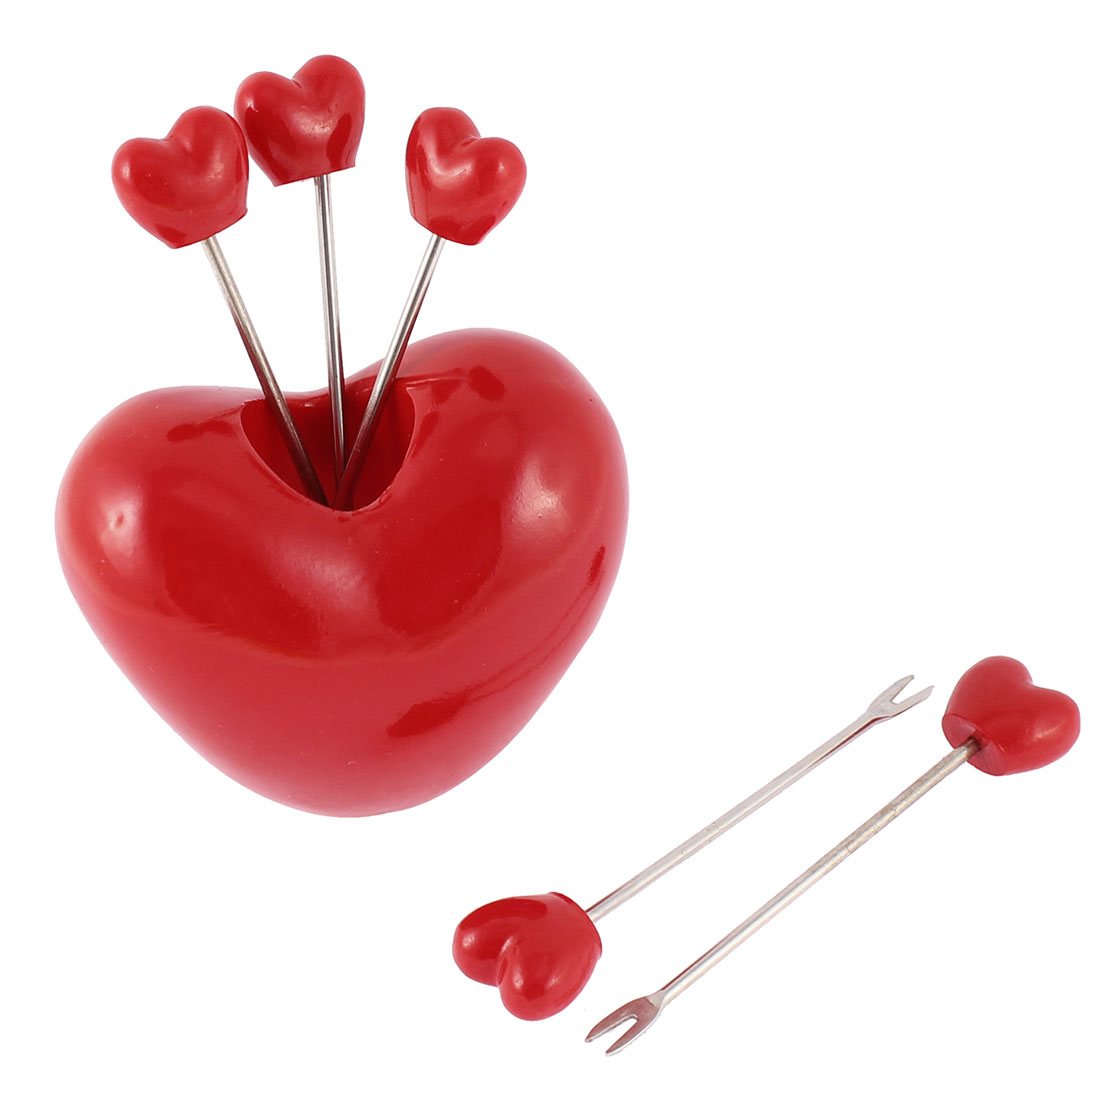 Home Kitchen Salad Heart Shaped Holder Fruit Fork 5-Forks Set Red